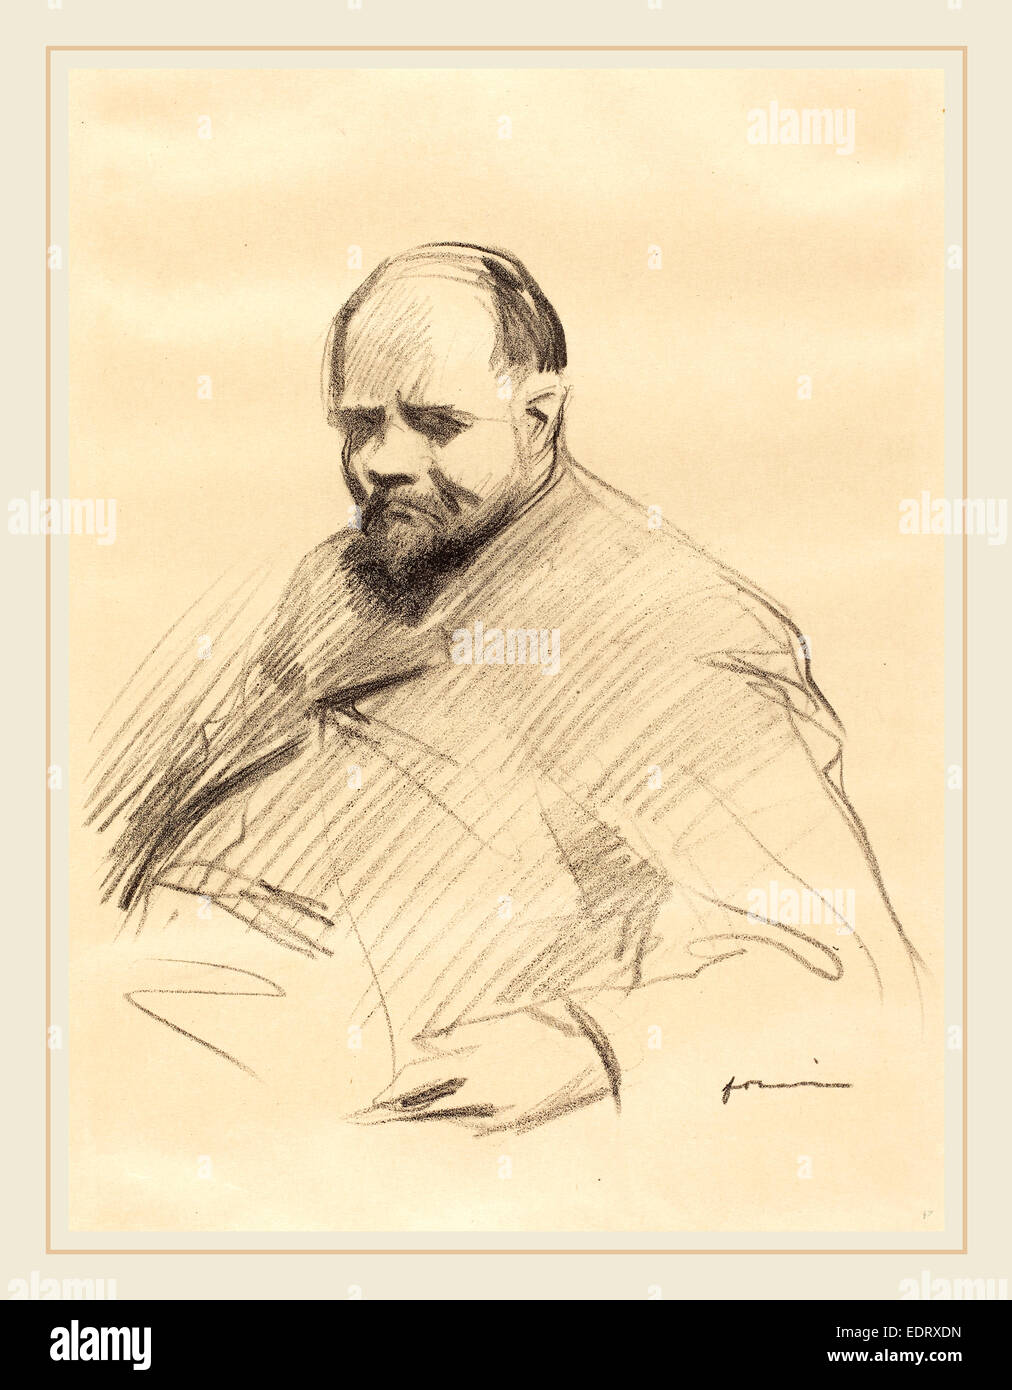 Jean-Louis Forain, Ambroise Vollard, French, 1852-1931, c. 1910, lithograph - Stock Image